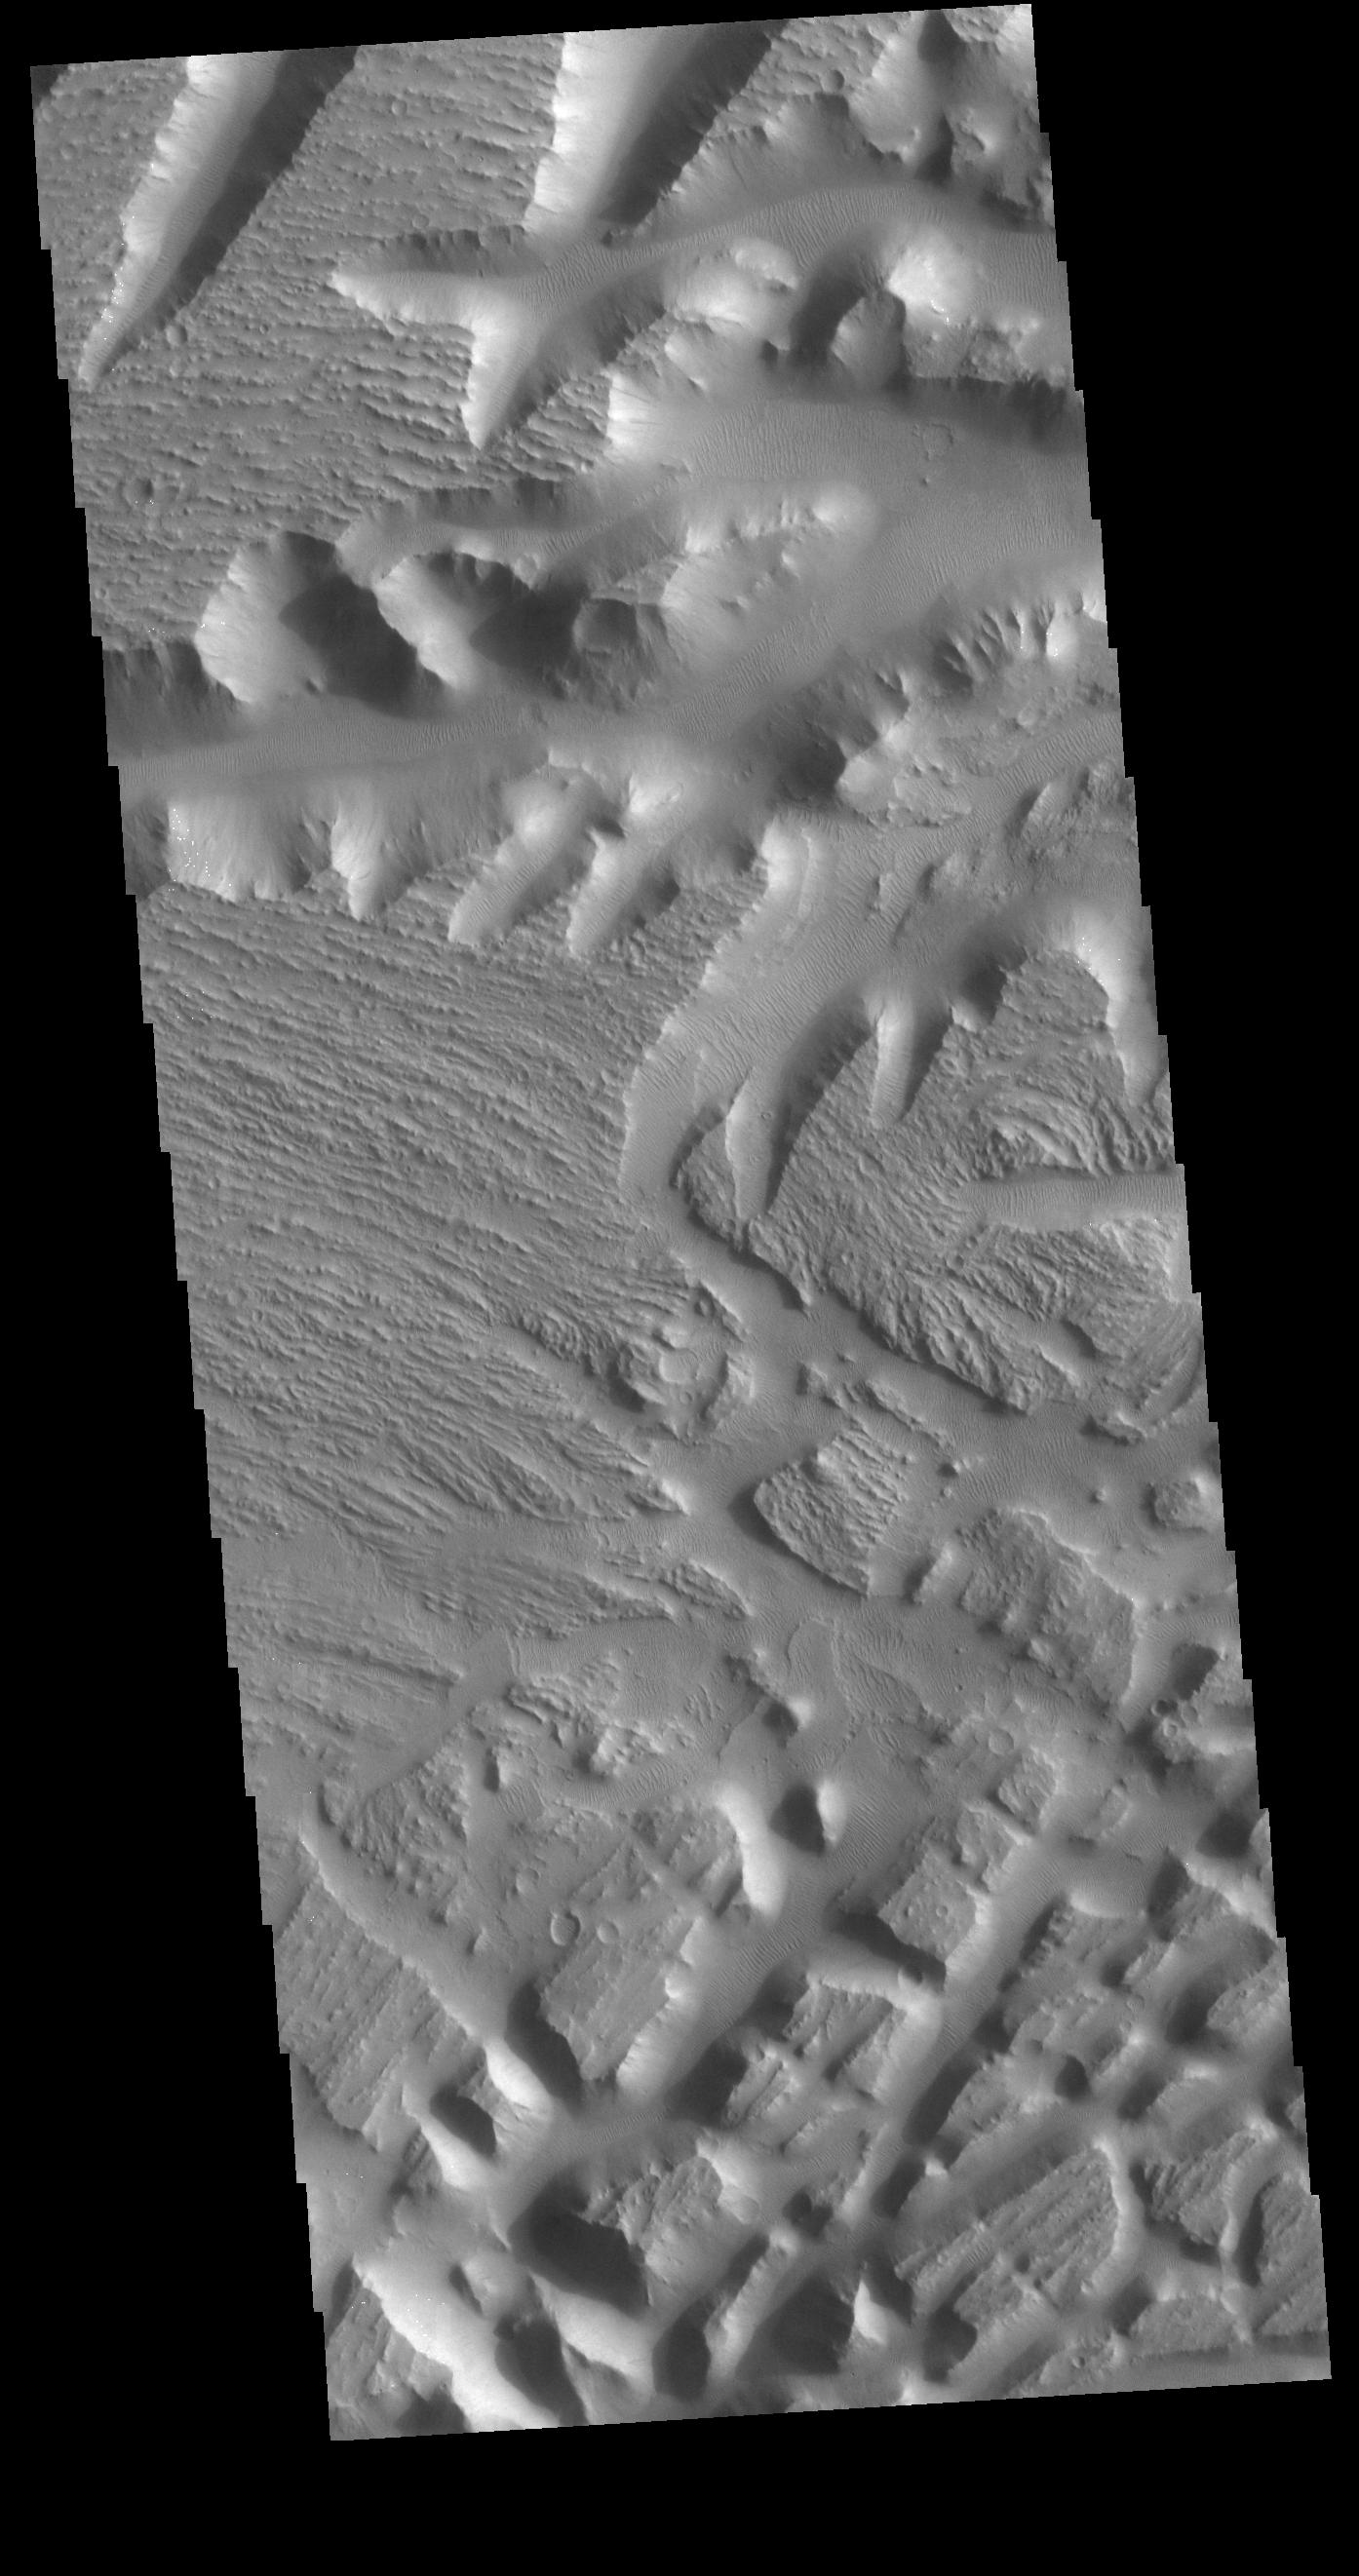 This image from NASAs Mars Odyssey shows part of Nilus Mensae, a complex region of tectonic faulting and fluid flow features.